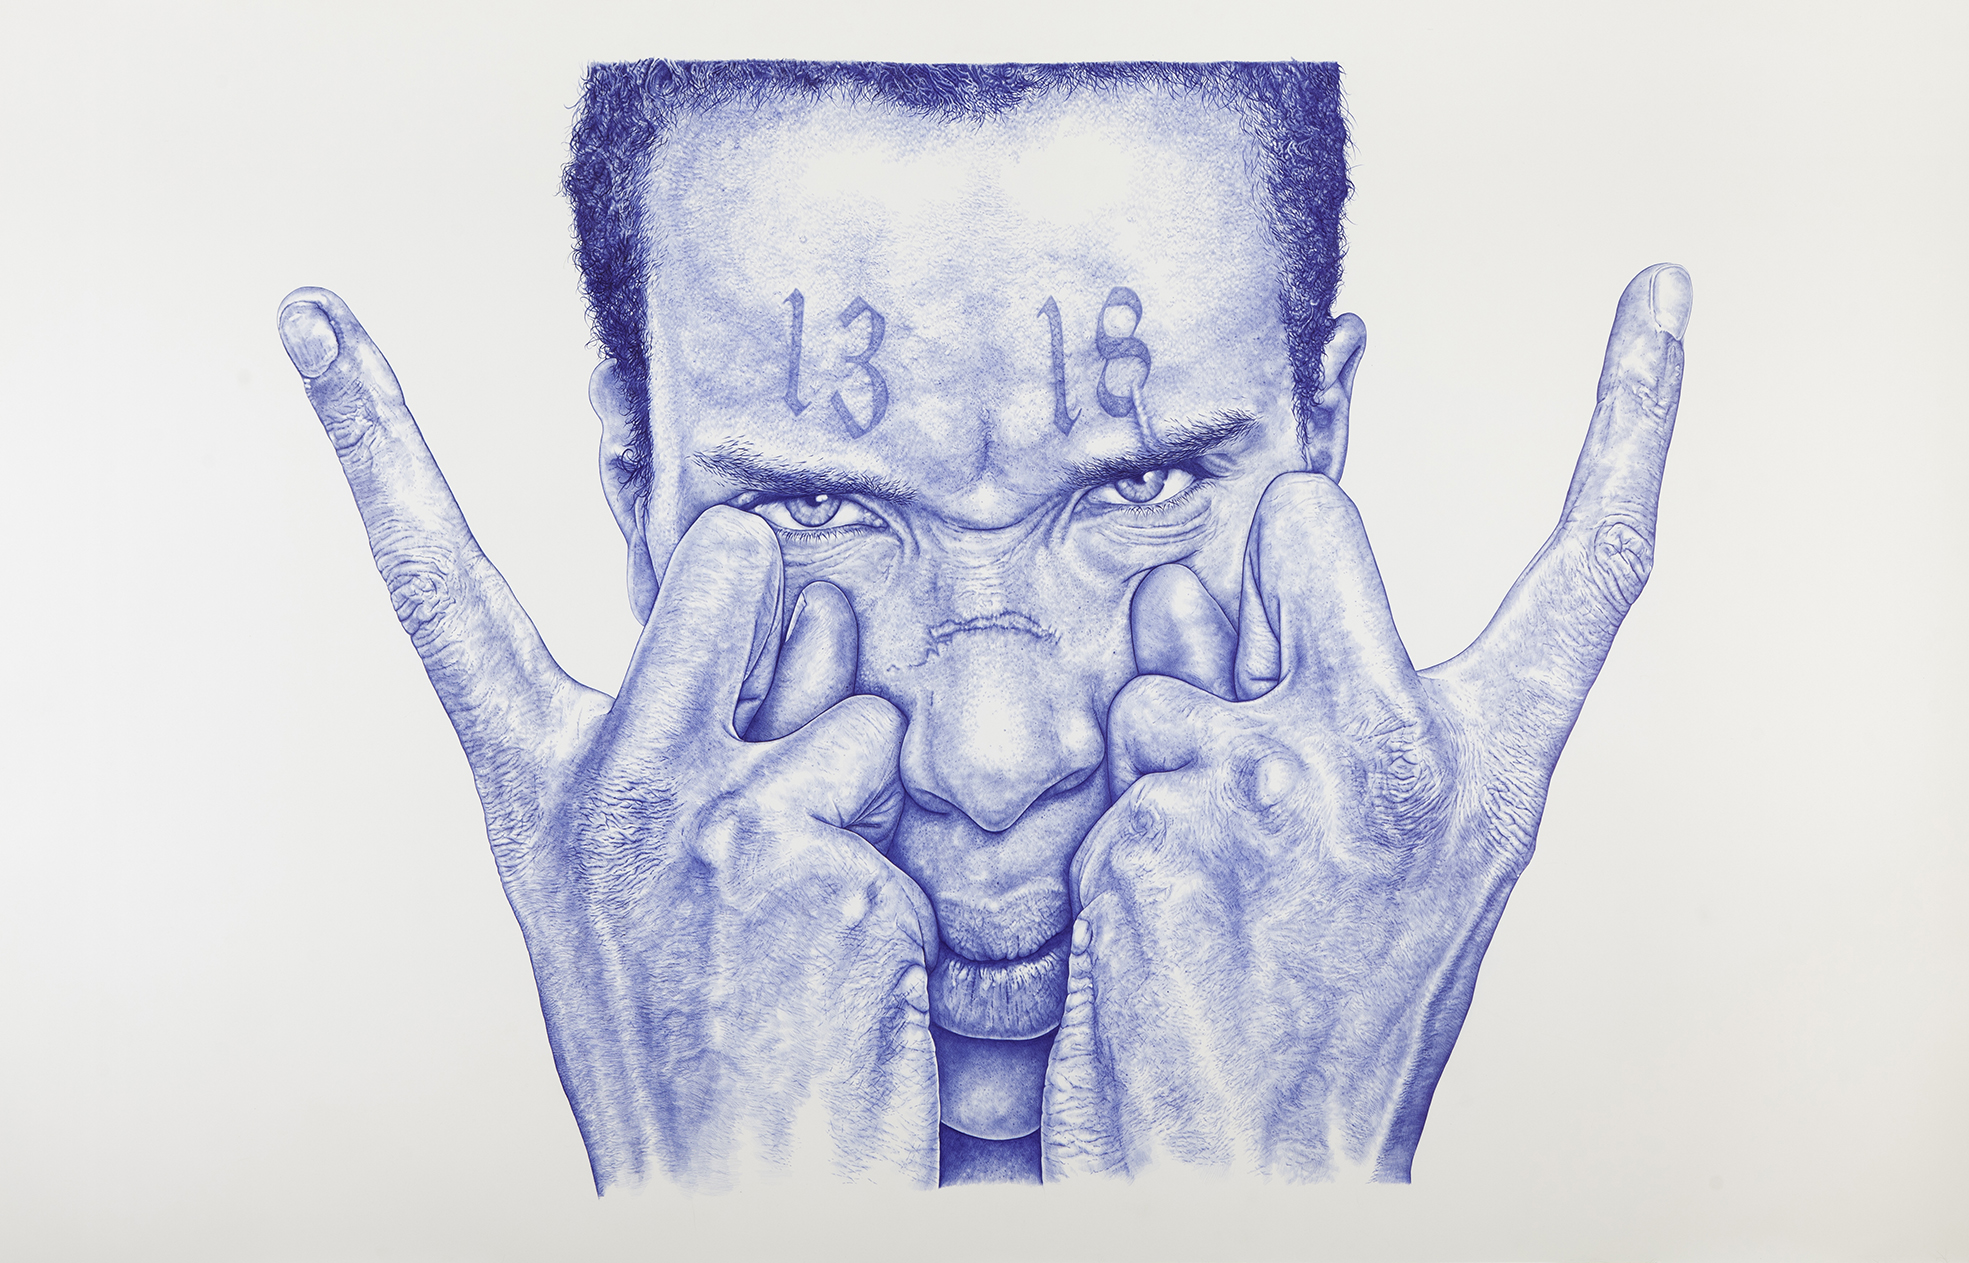 THE KID   « Let he who has understanding calculate the number of the beast, for this number is that of a man. »,   2015. W 94,5 x H 71,65 x D 2,36 in. / L 240 x H 182 x P 6 cm. Blue Bic biro on paper. / Stylo Bic bleu sur papier. Private Collection, Switzerland. ©2015 THE KID all rights reserved / tous droits réservés.